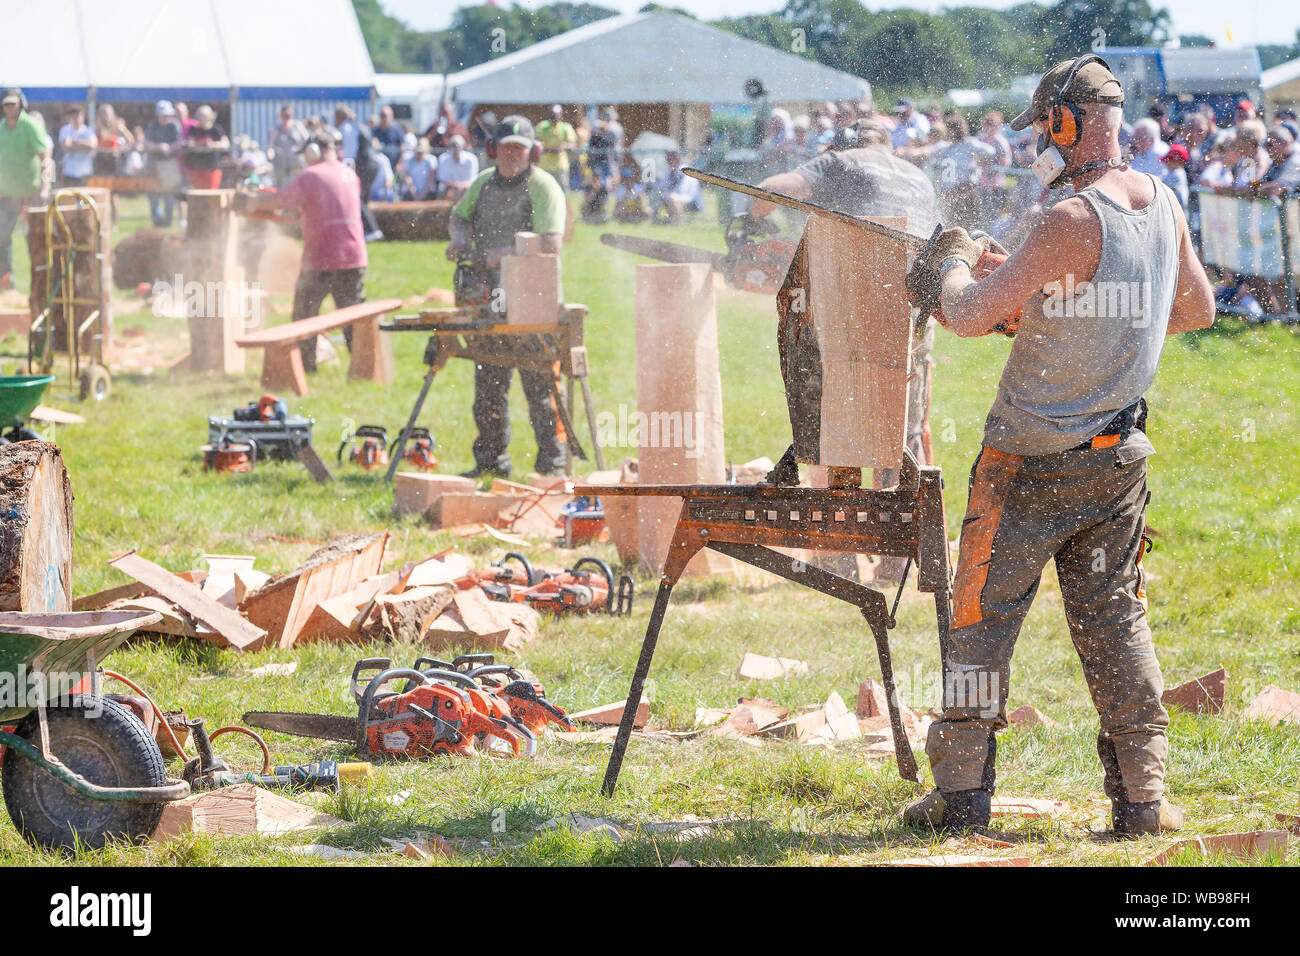 Chainsaw Competition Logs Stock Photos & Chainsaw